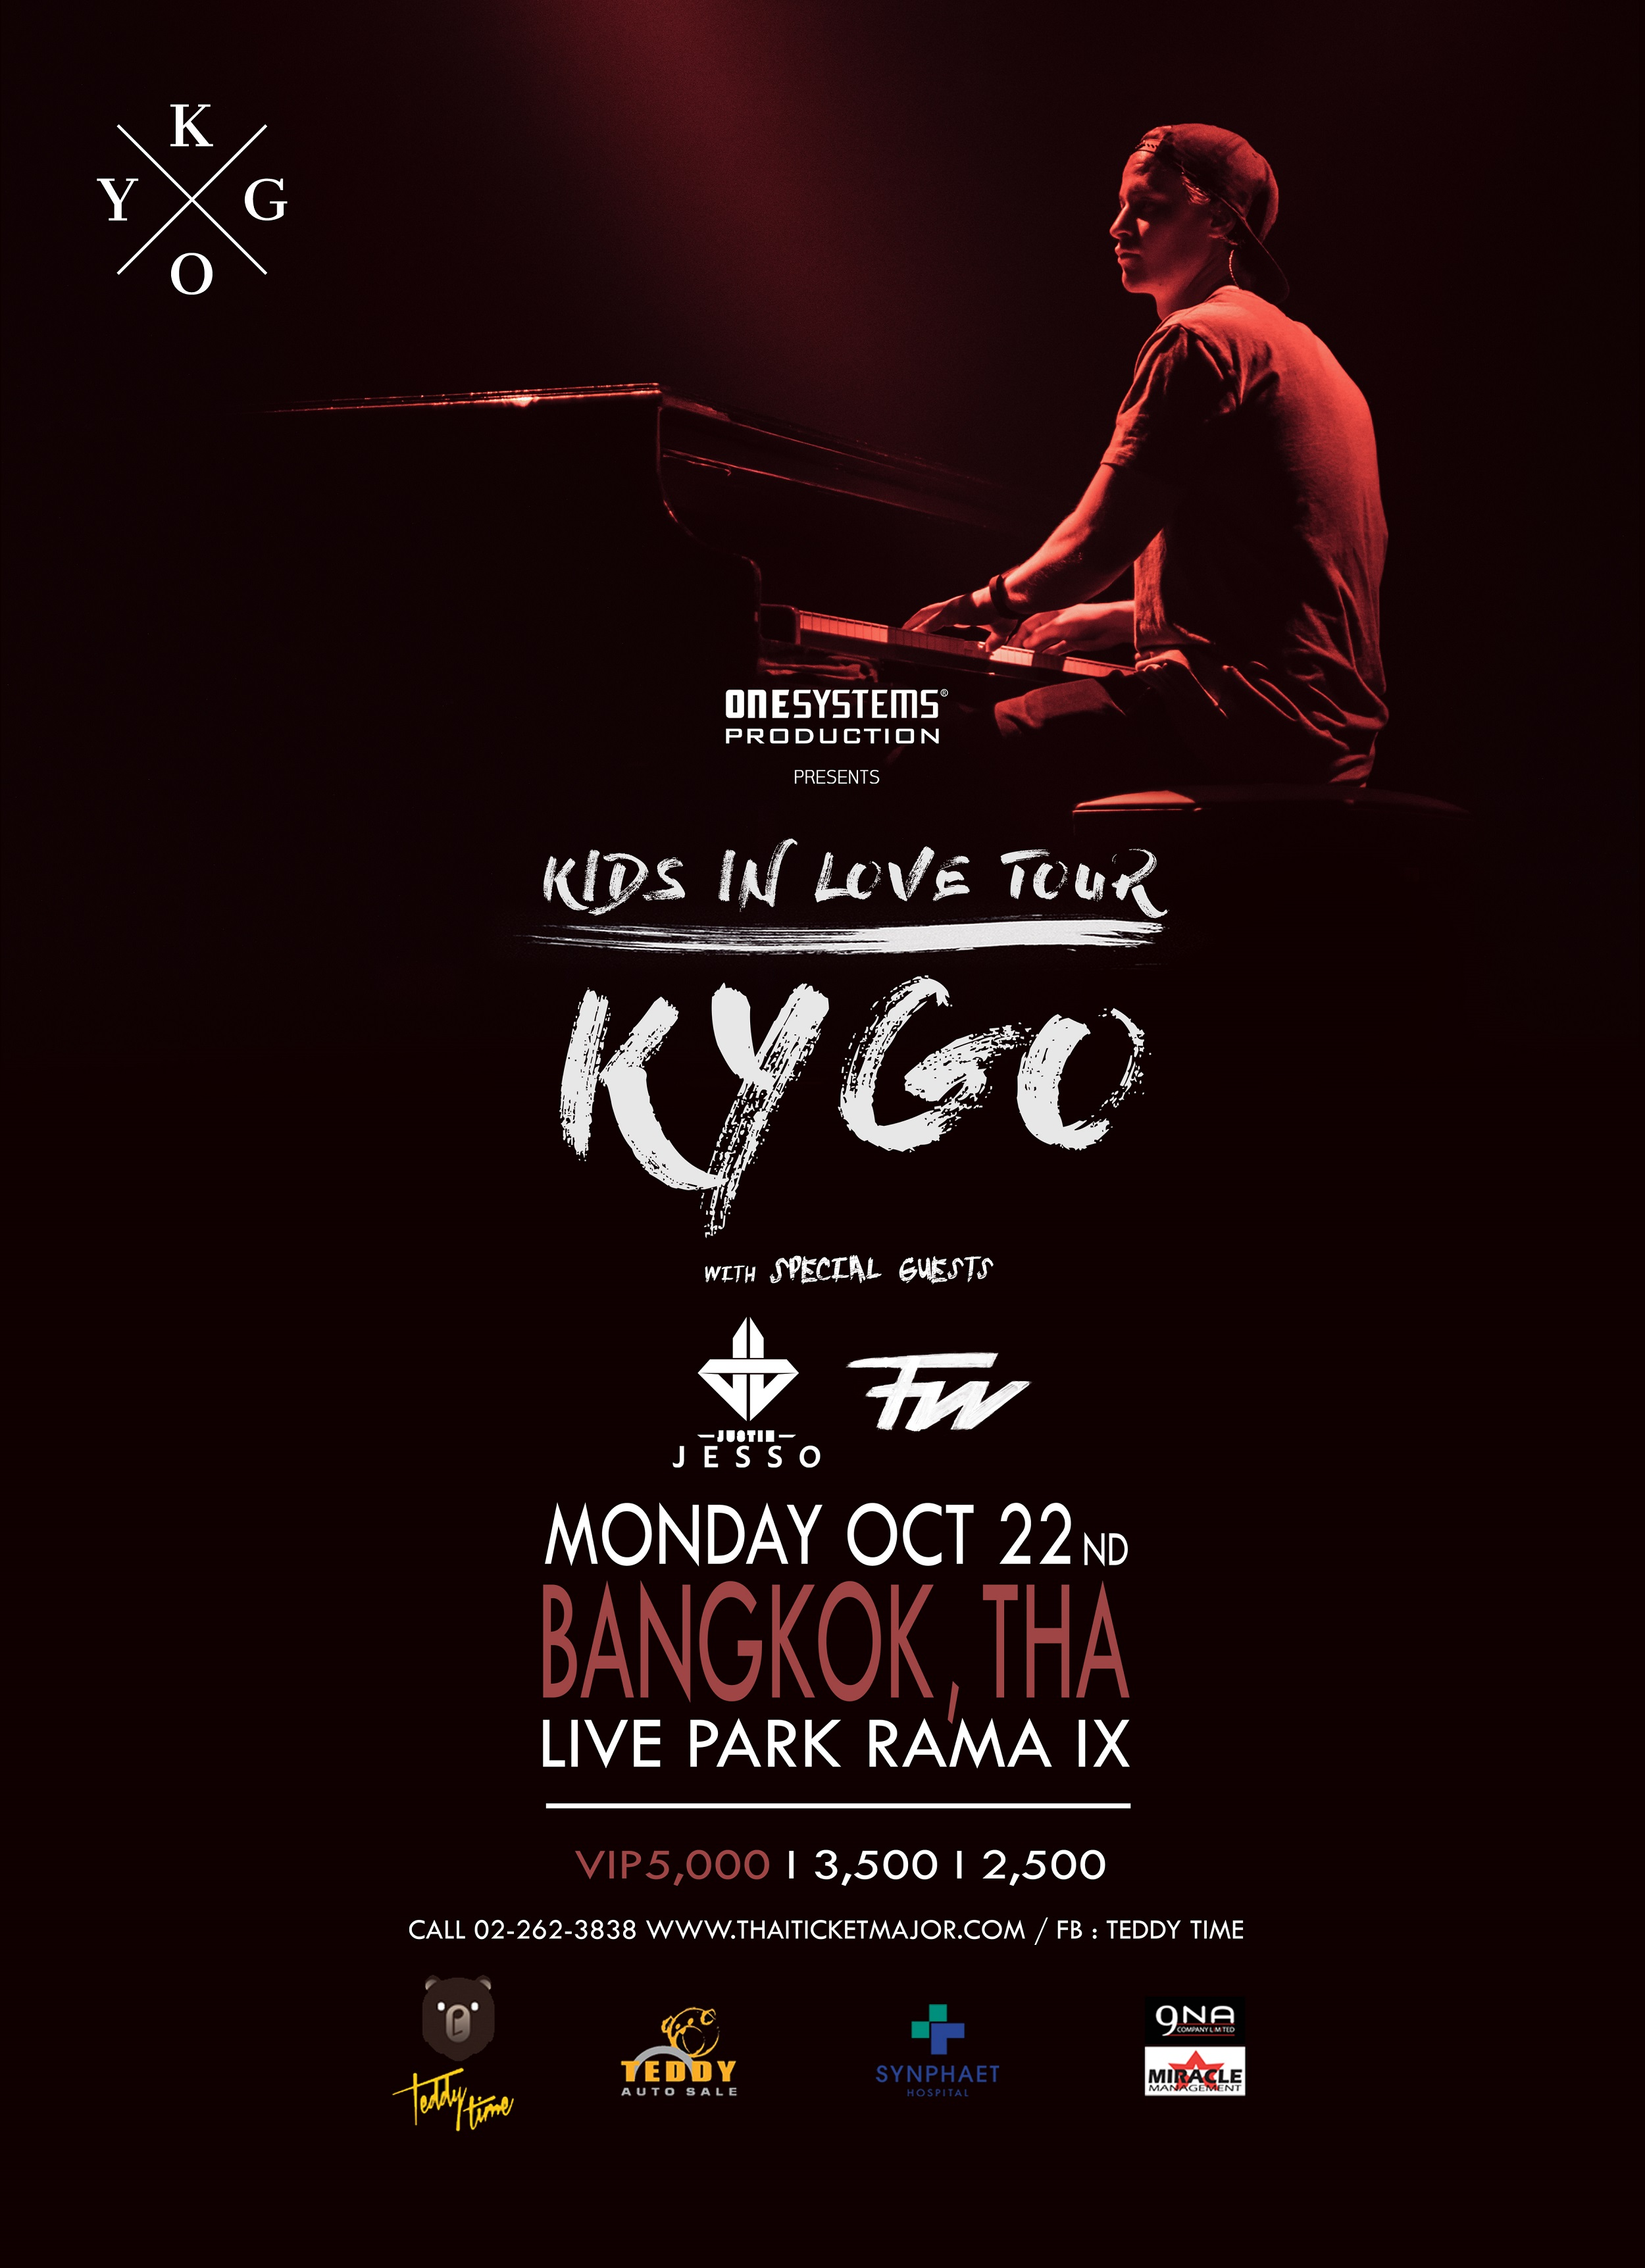 One Systems Presents Kygo Kids In Love Tour Live In Bangkok